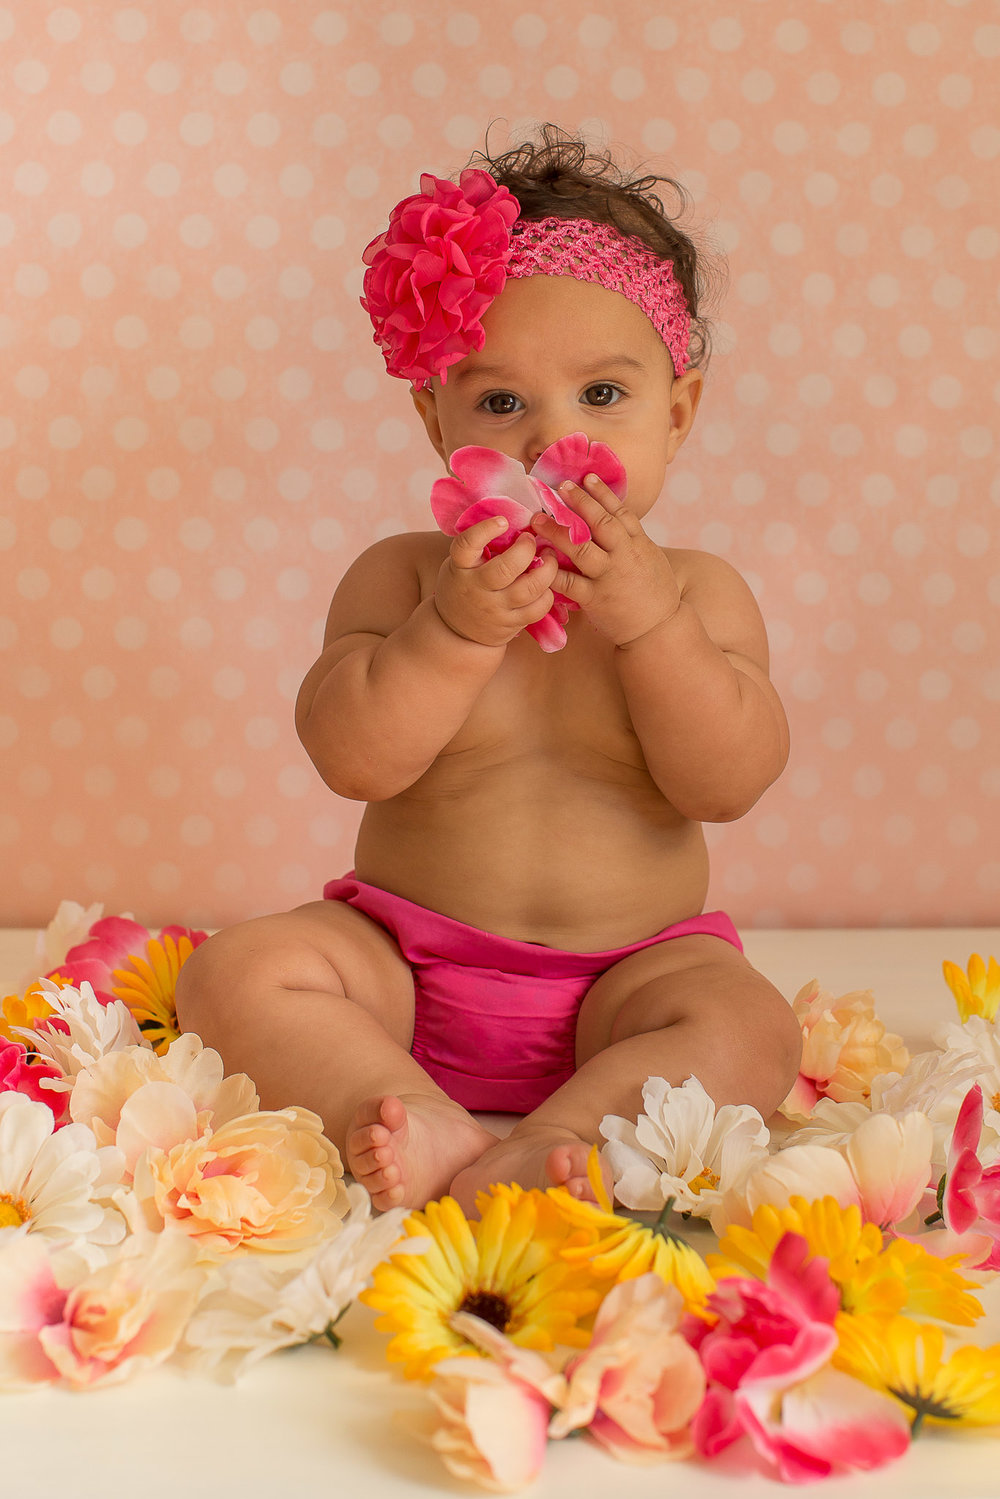 baby-girl-flowers-smelling.jpg